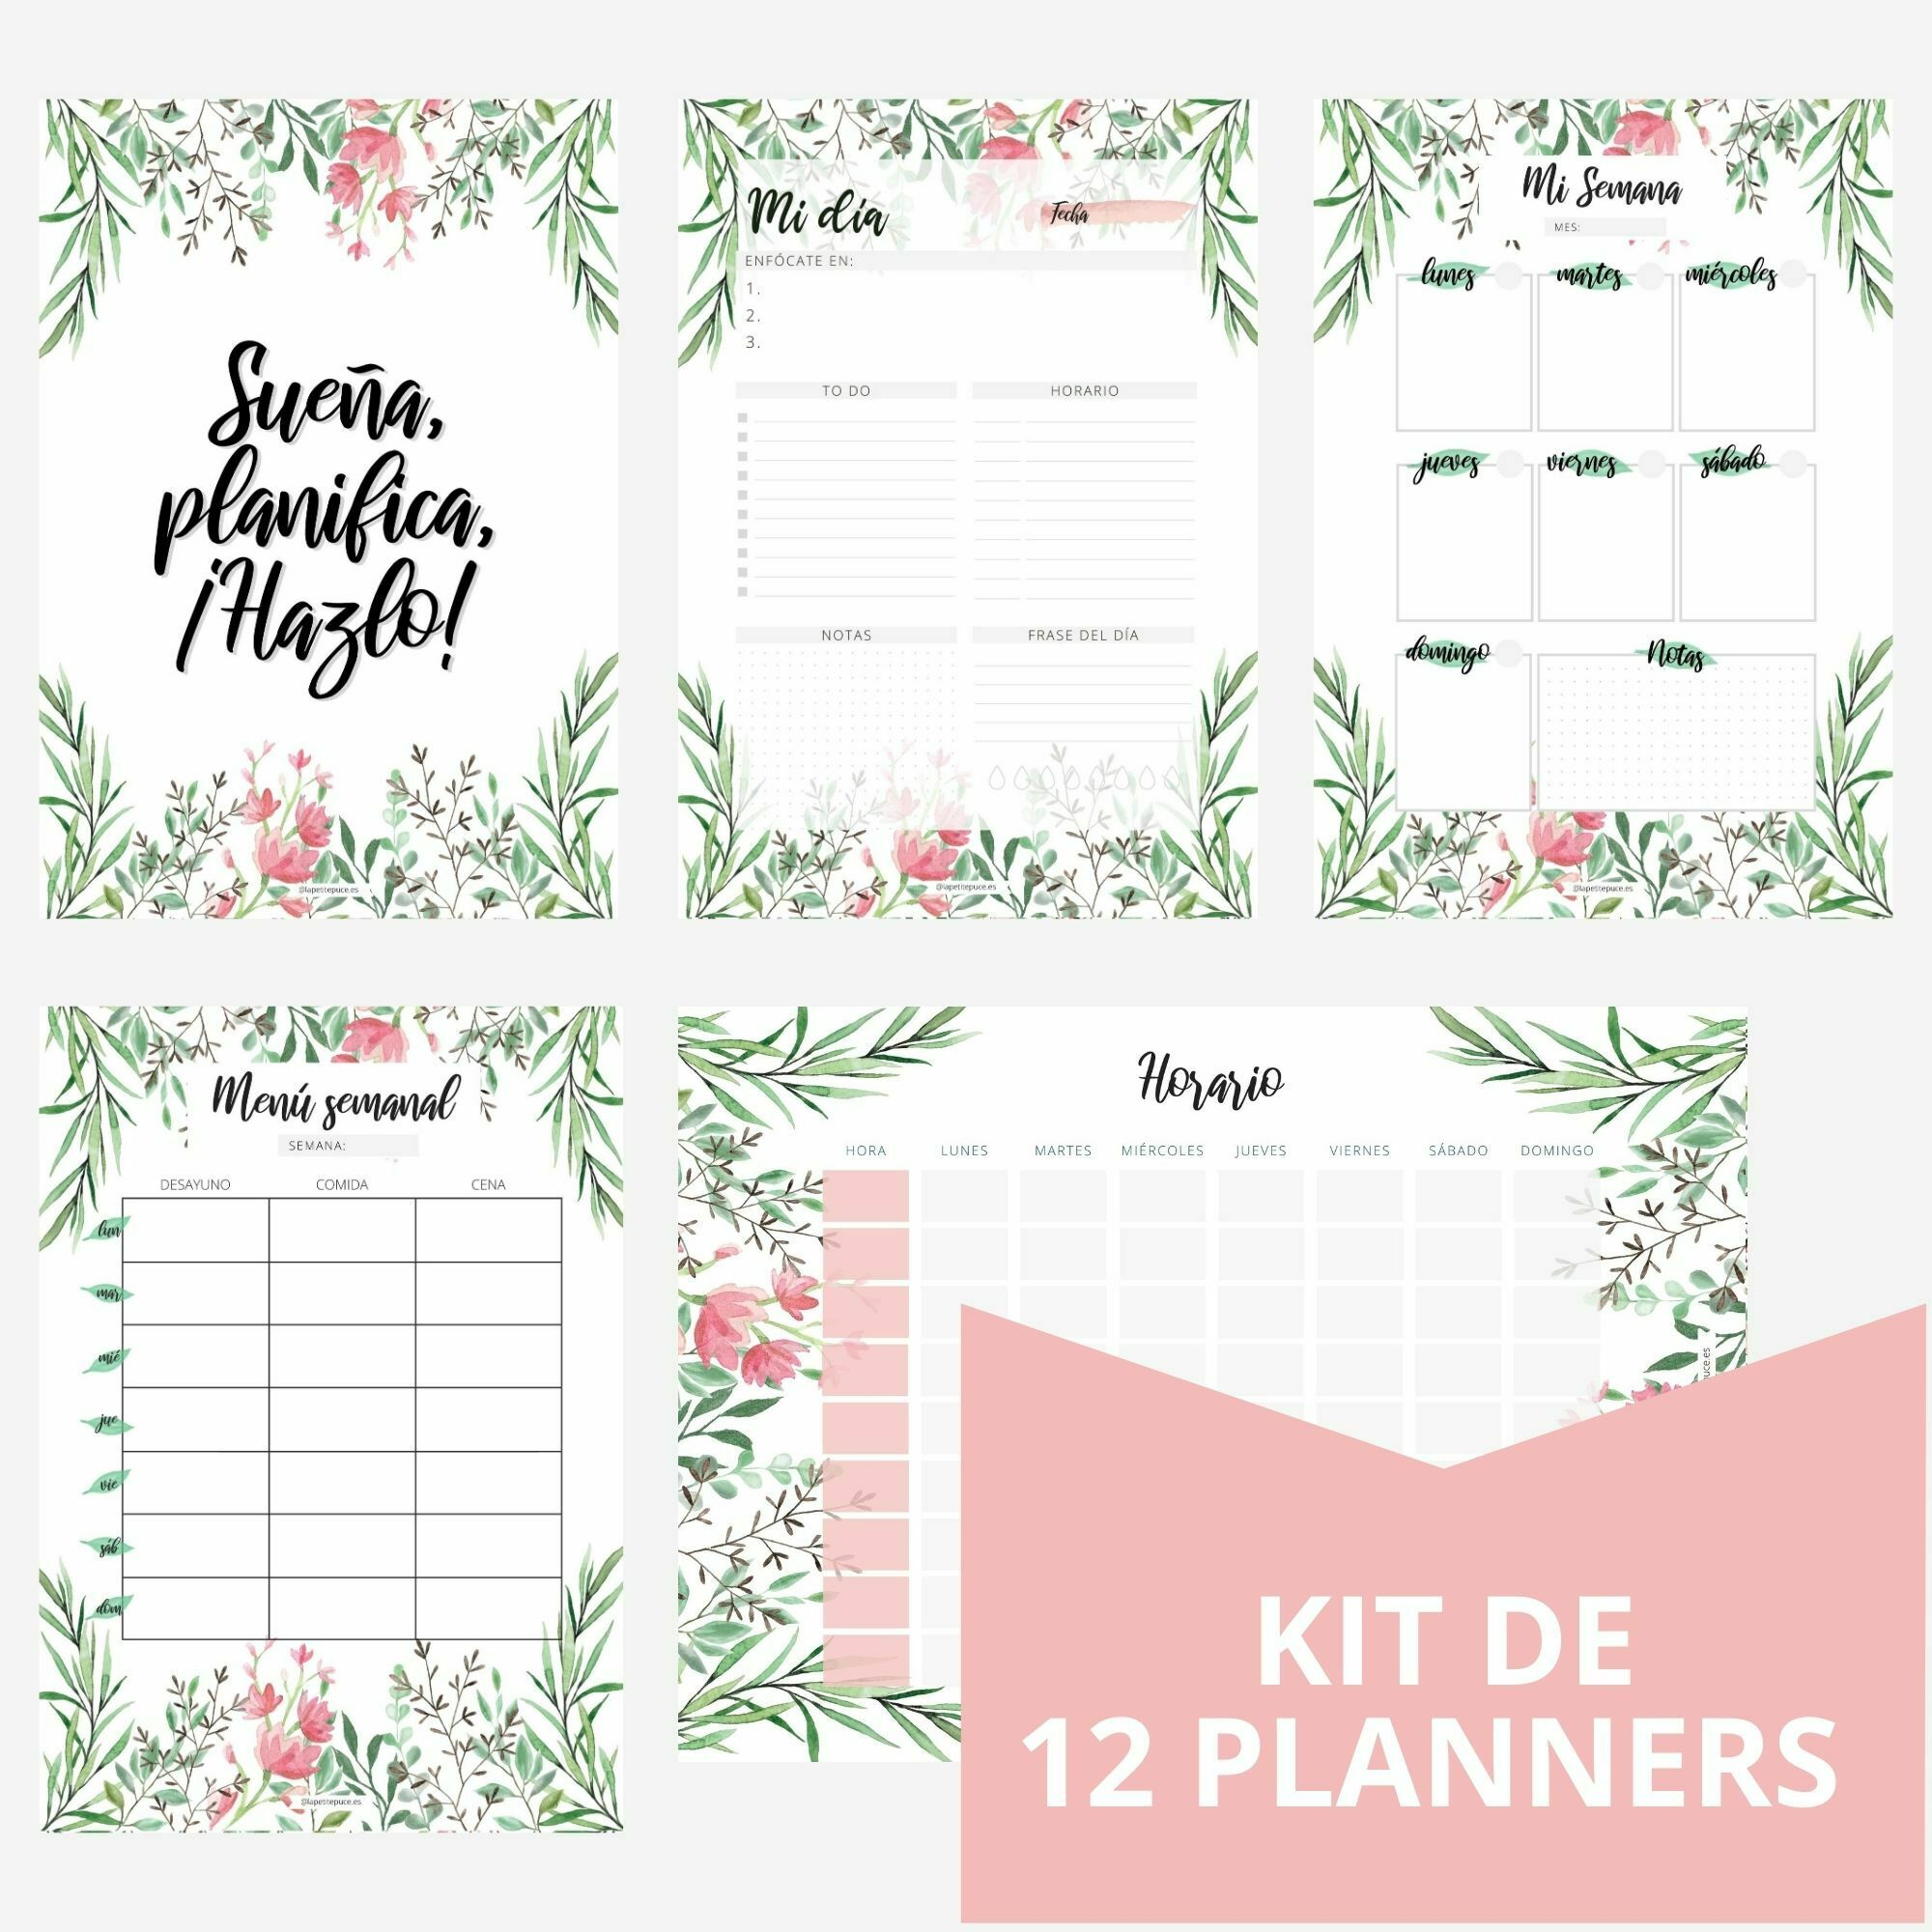 kit planners